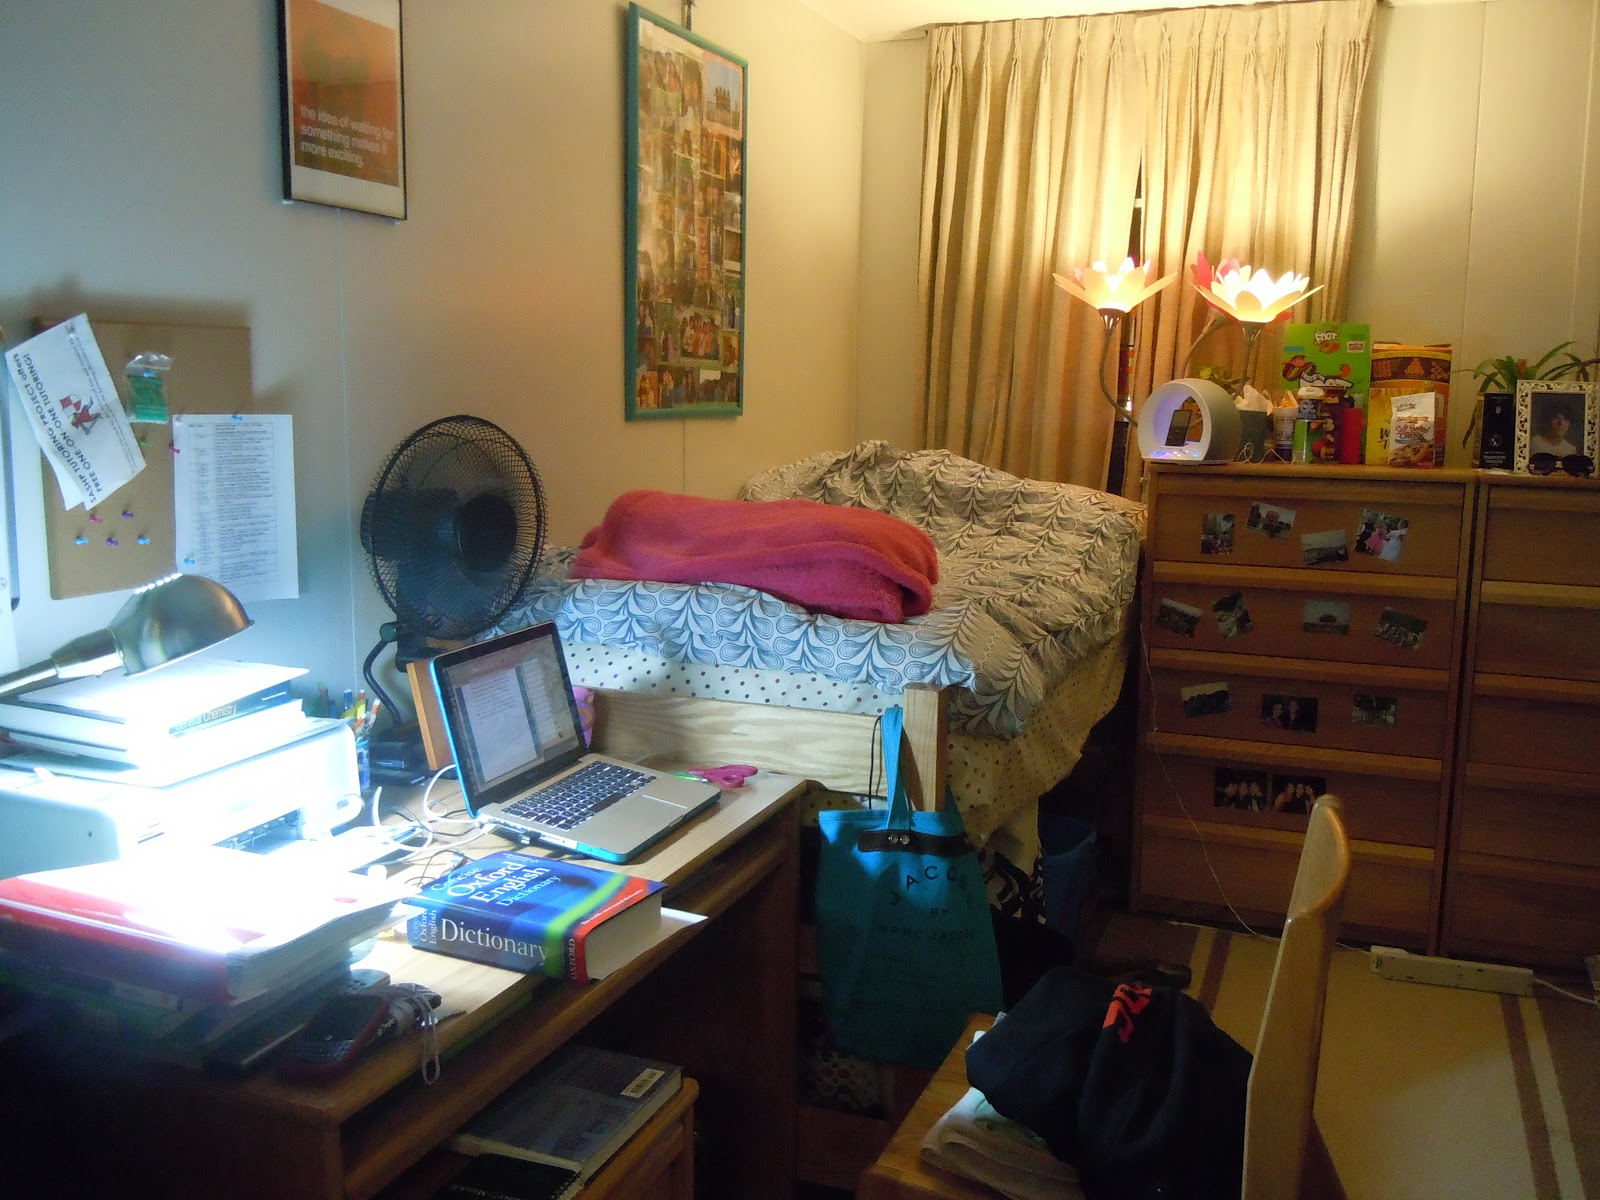 college bedroom decorations my dorm room beginning of freshman year